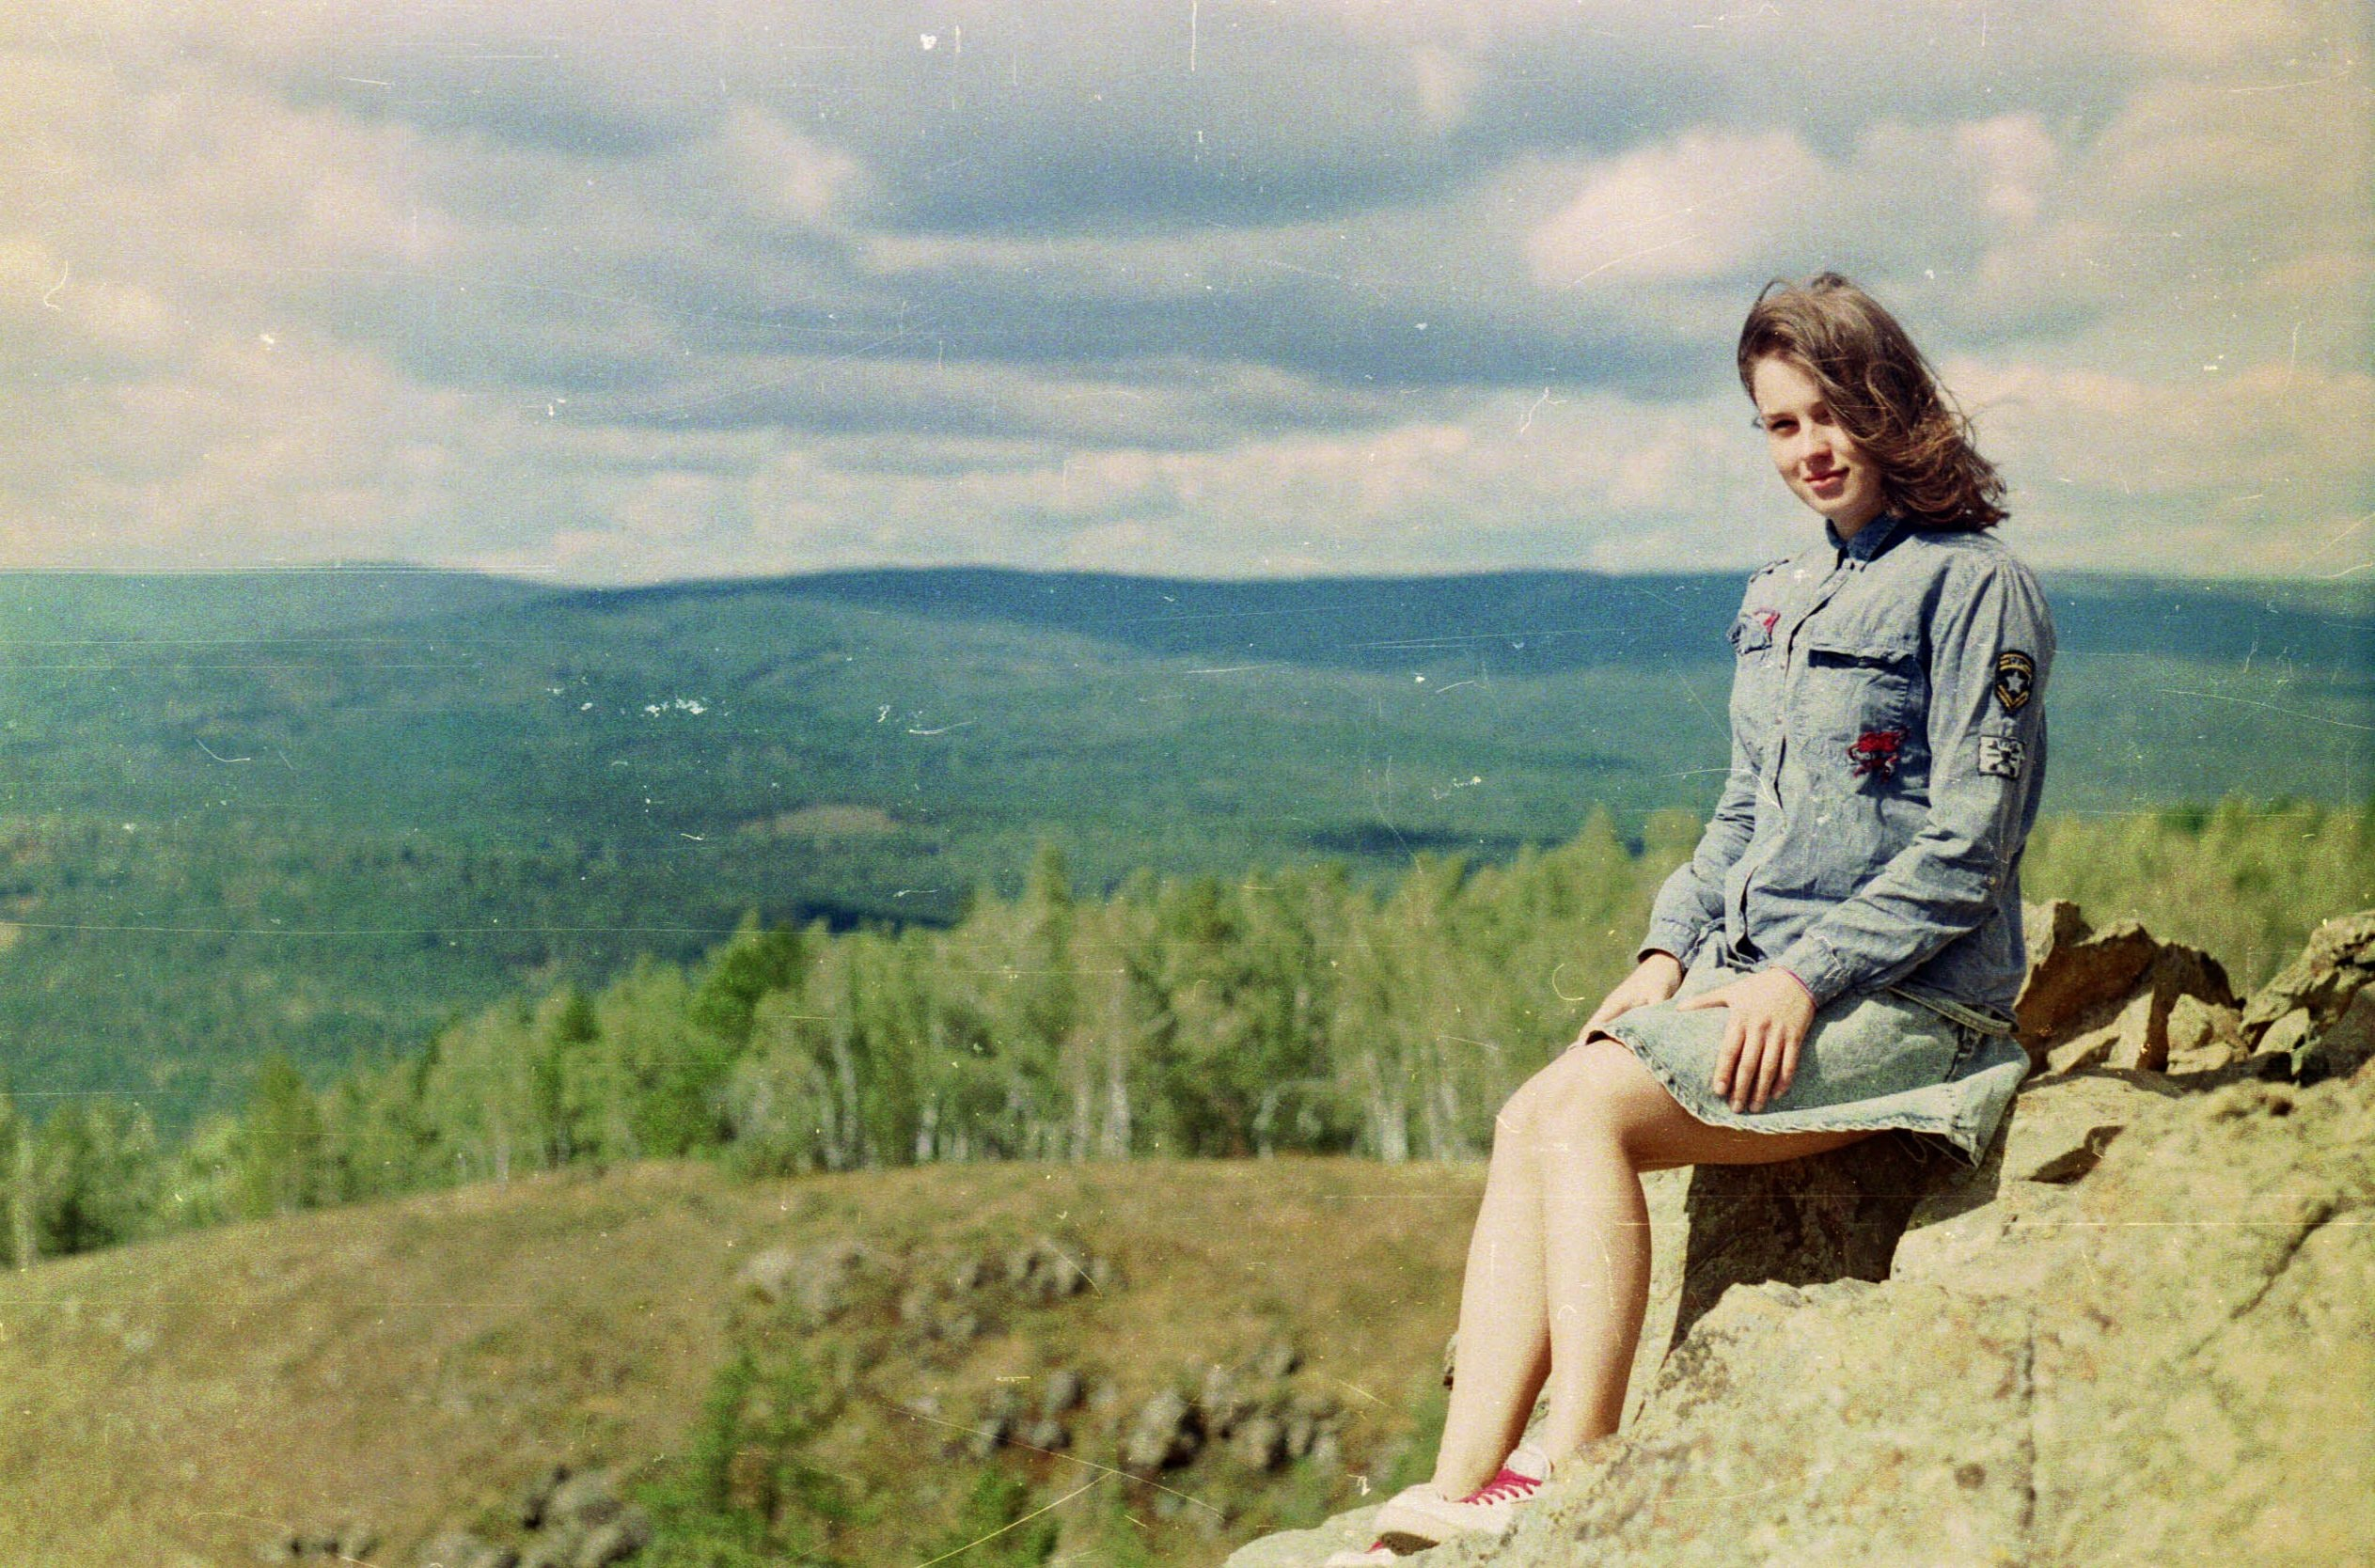 Retro film image of a happy woman sitting atop mountains